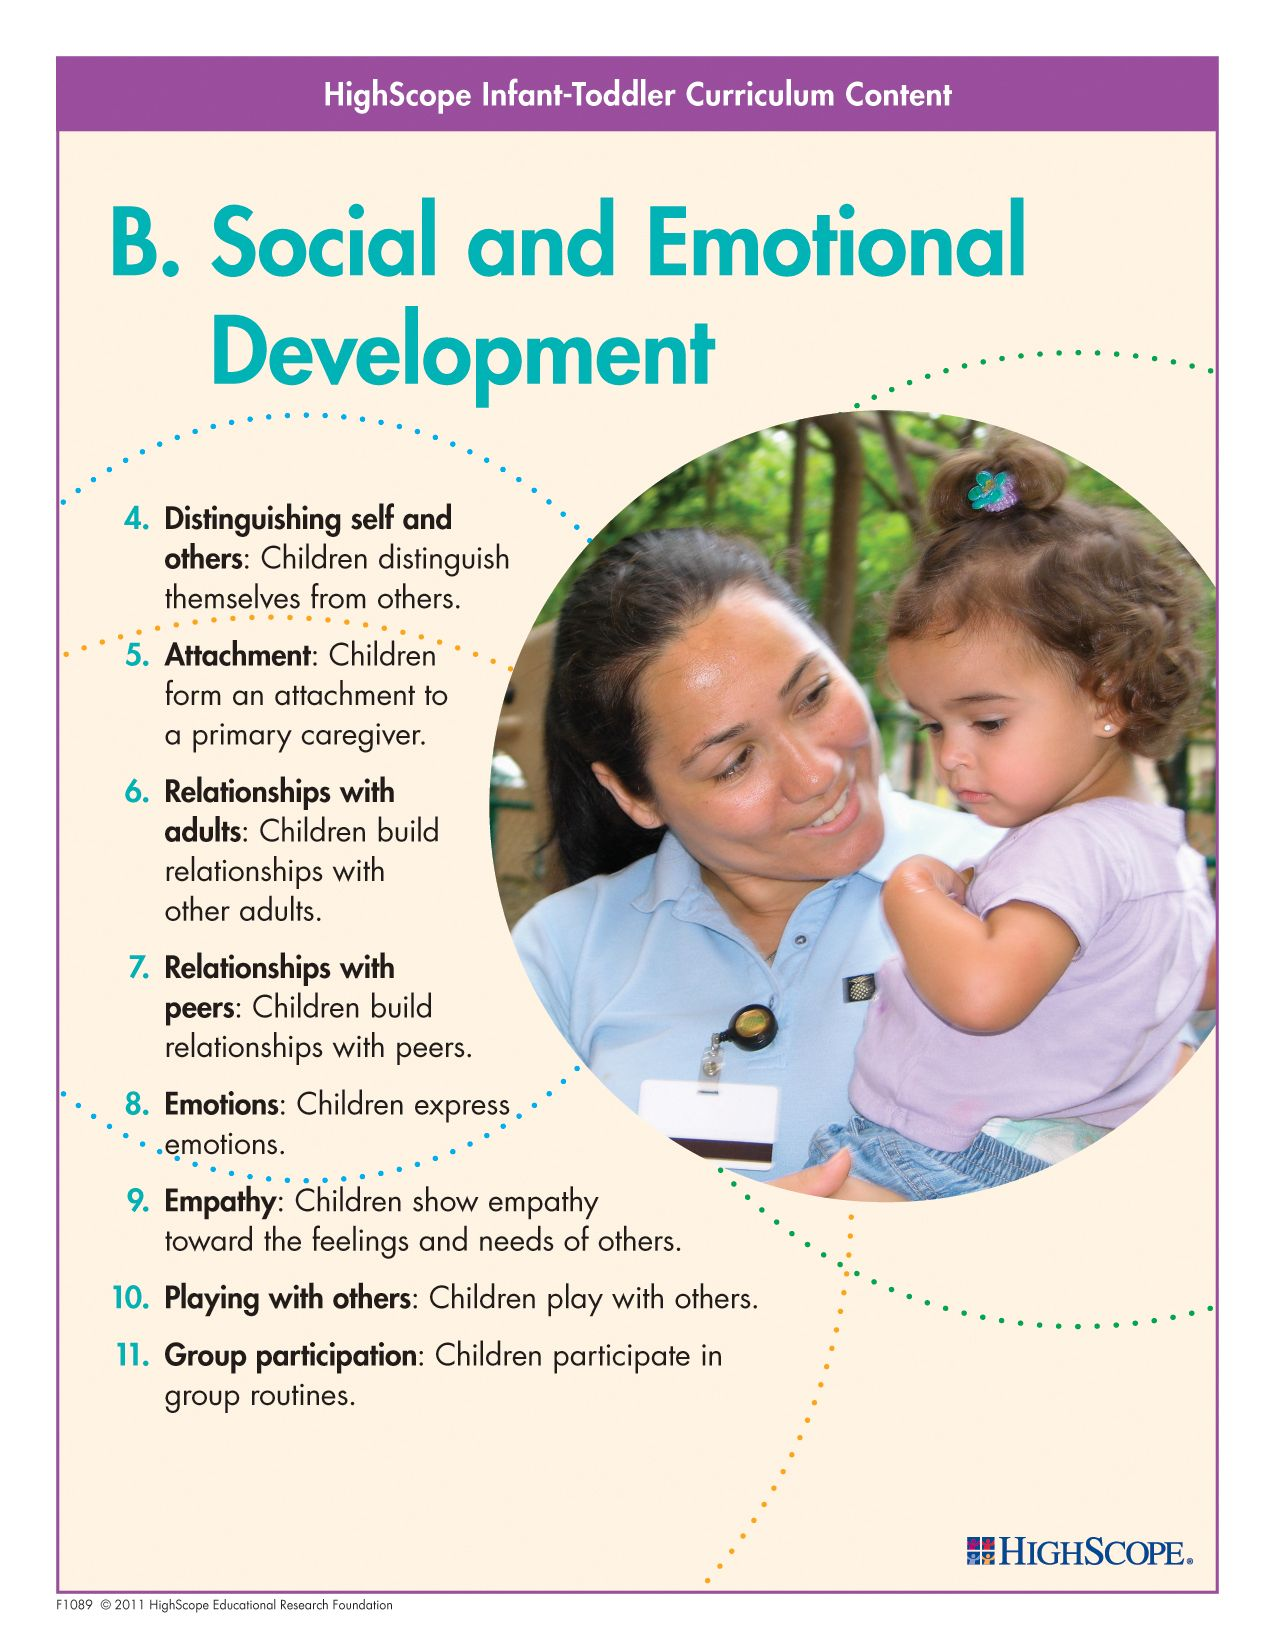 physical development of infants study guide